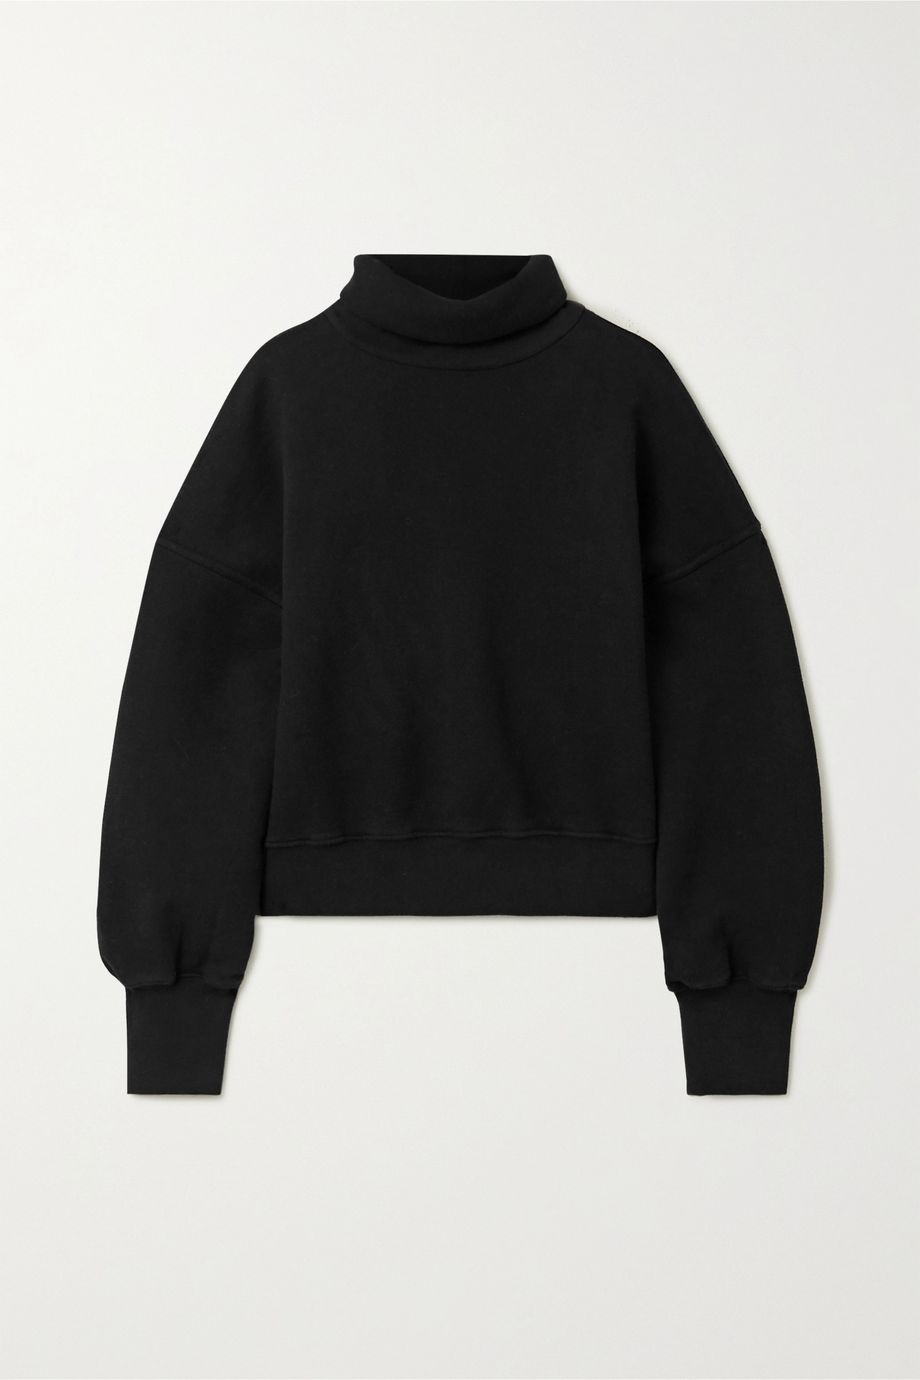 AGOLDE Cropped cotton-jersey turtleneck sweatshirt